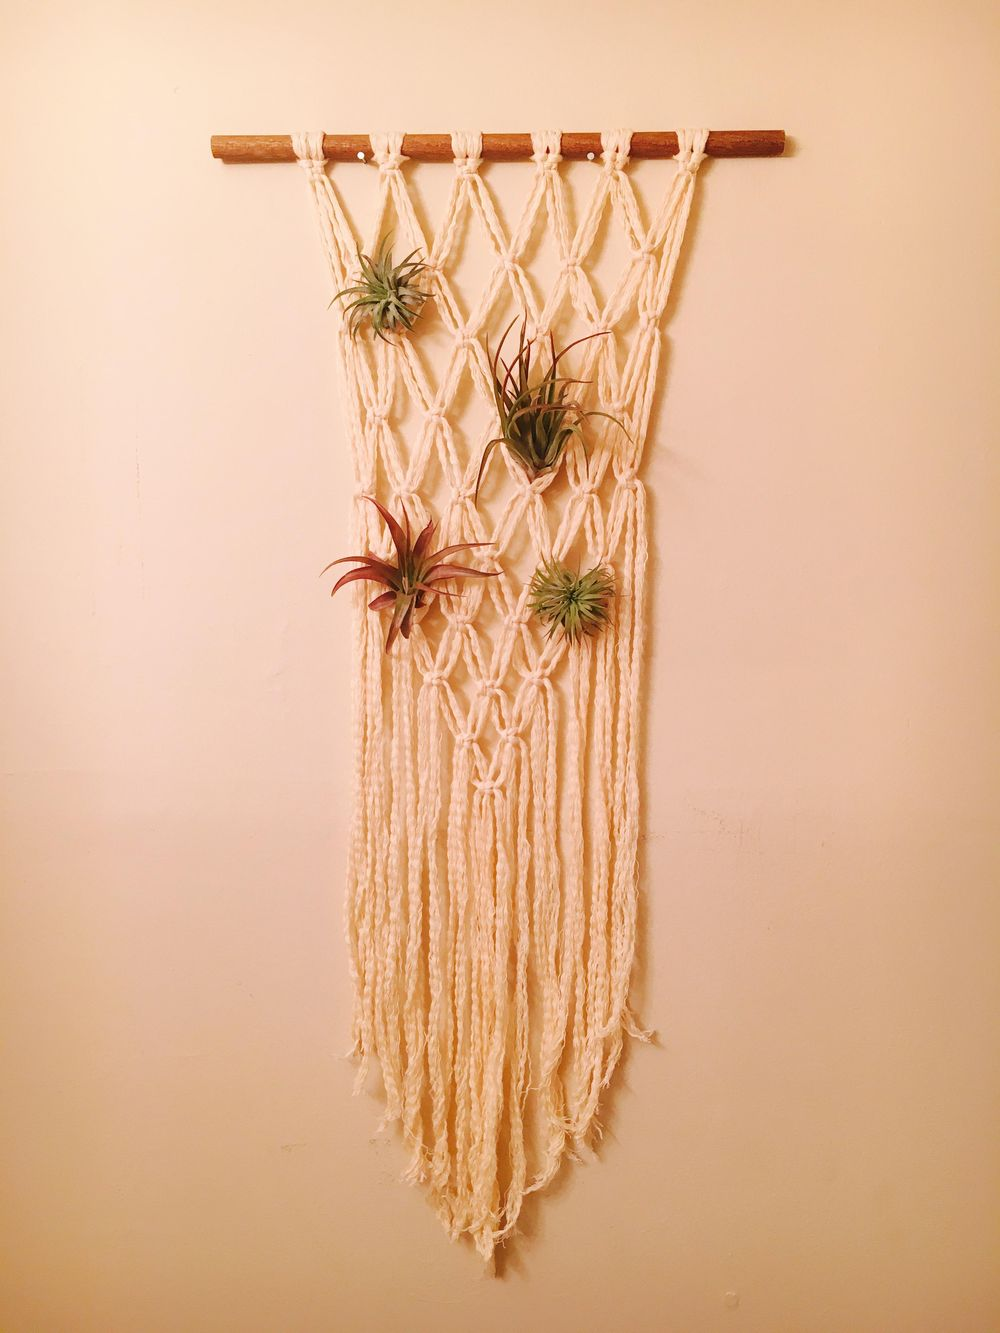 My First Macrame Wall Hanging! - image 1 - student project